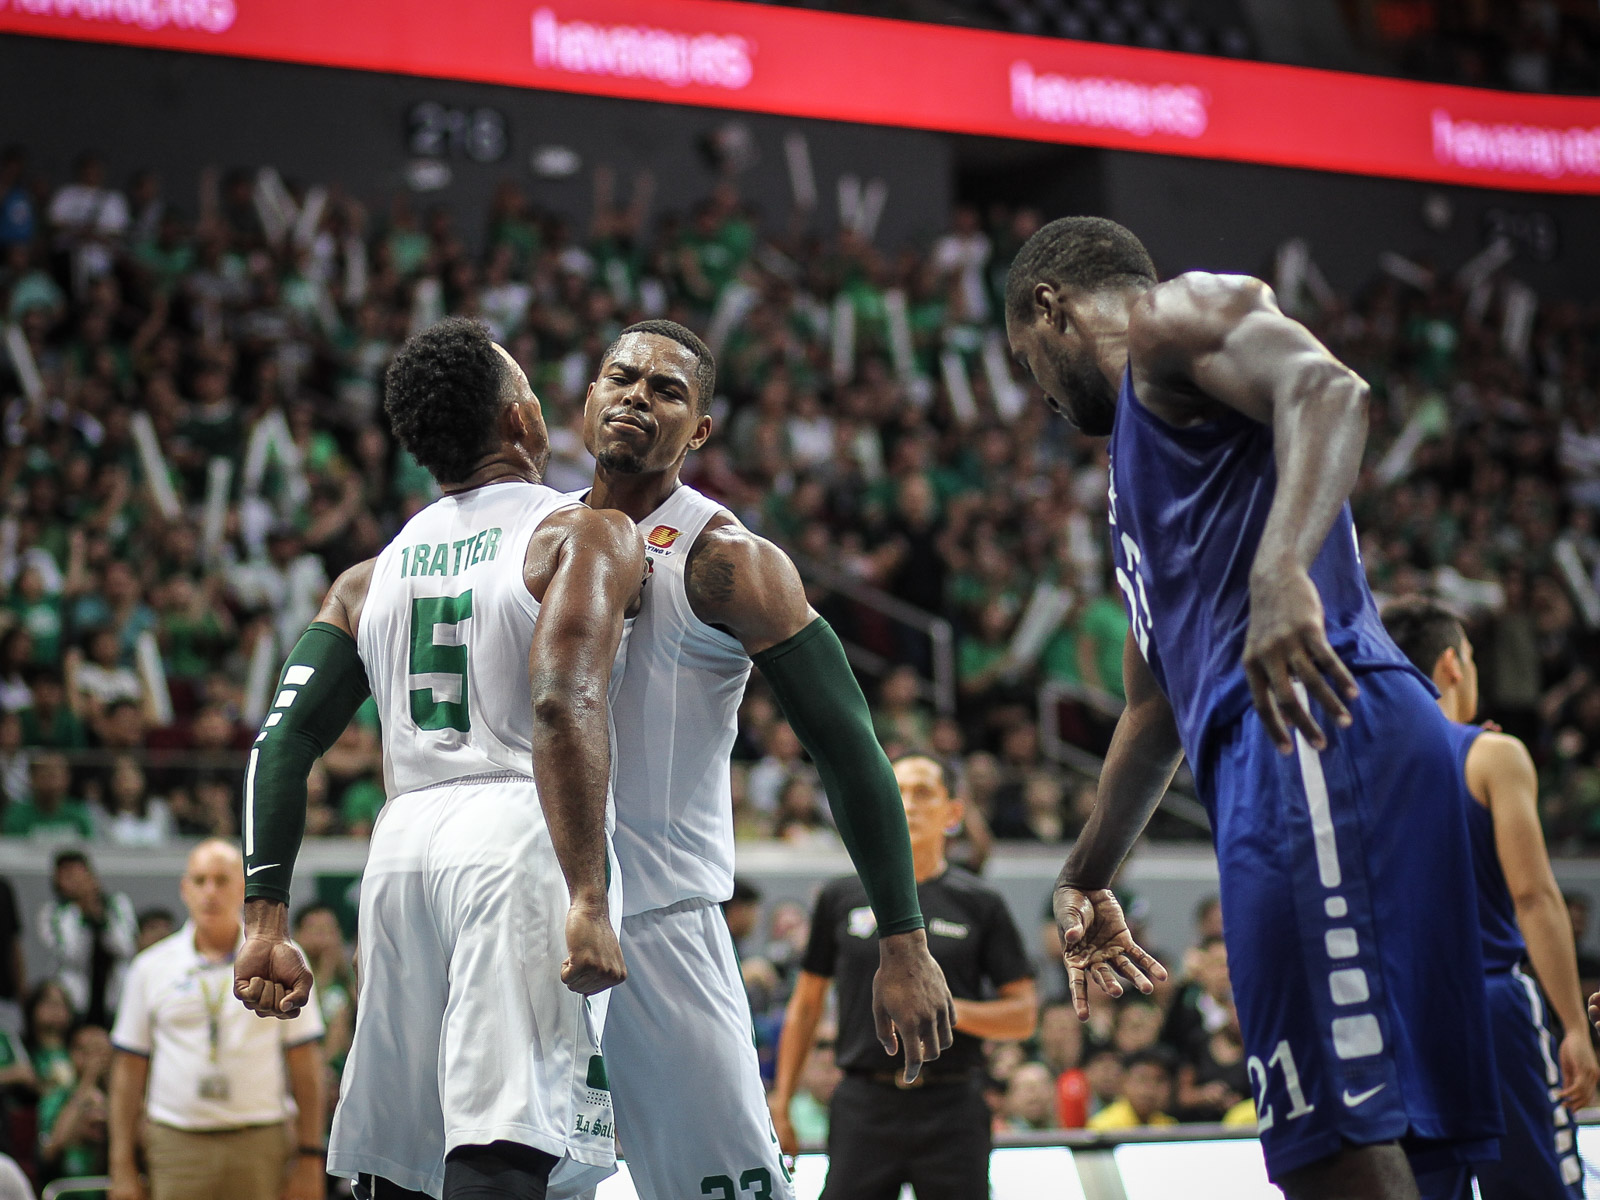 GET UP THERE. La Salle's Ben Mbala (next to Abu Tratter) dominates against Ateneo in their game on October 2, 2016. Photo by Josh Albelda/Rappler